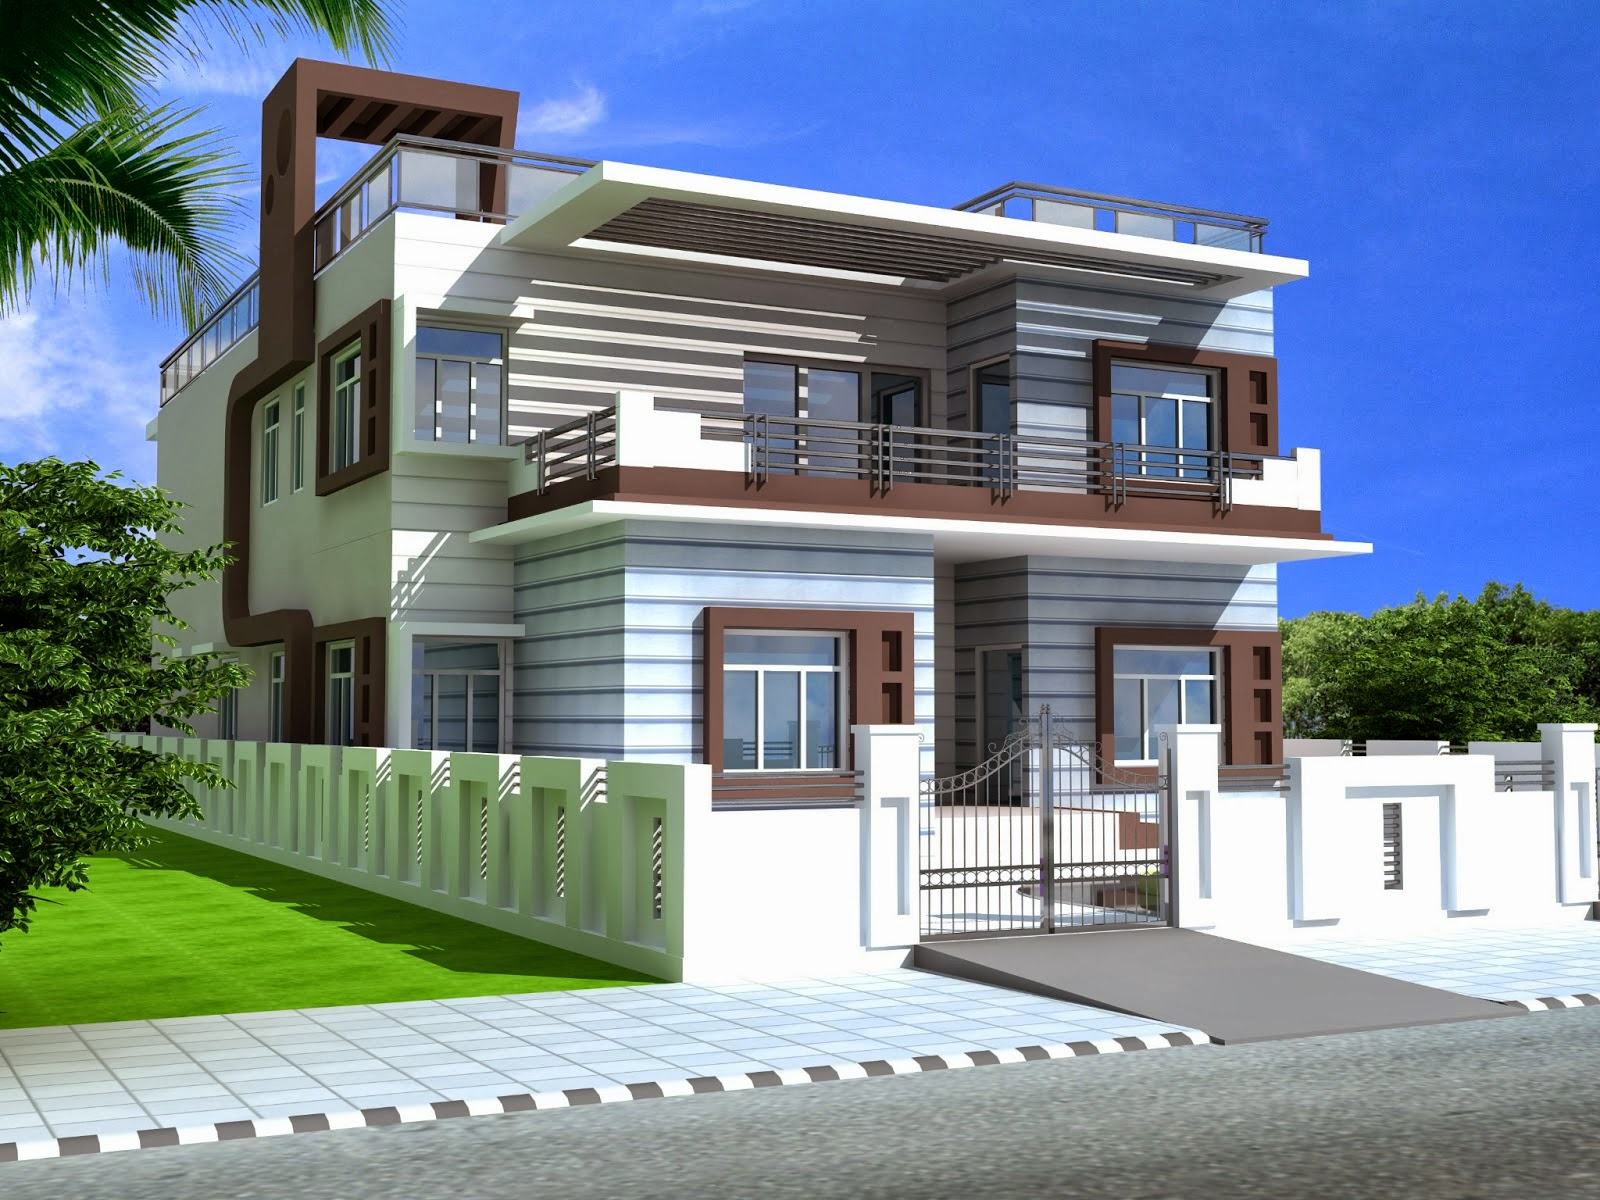 Foundation dezin decor duplex homes 3ds max work Design my home